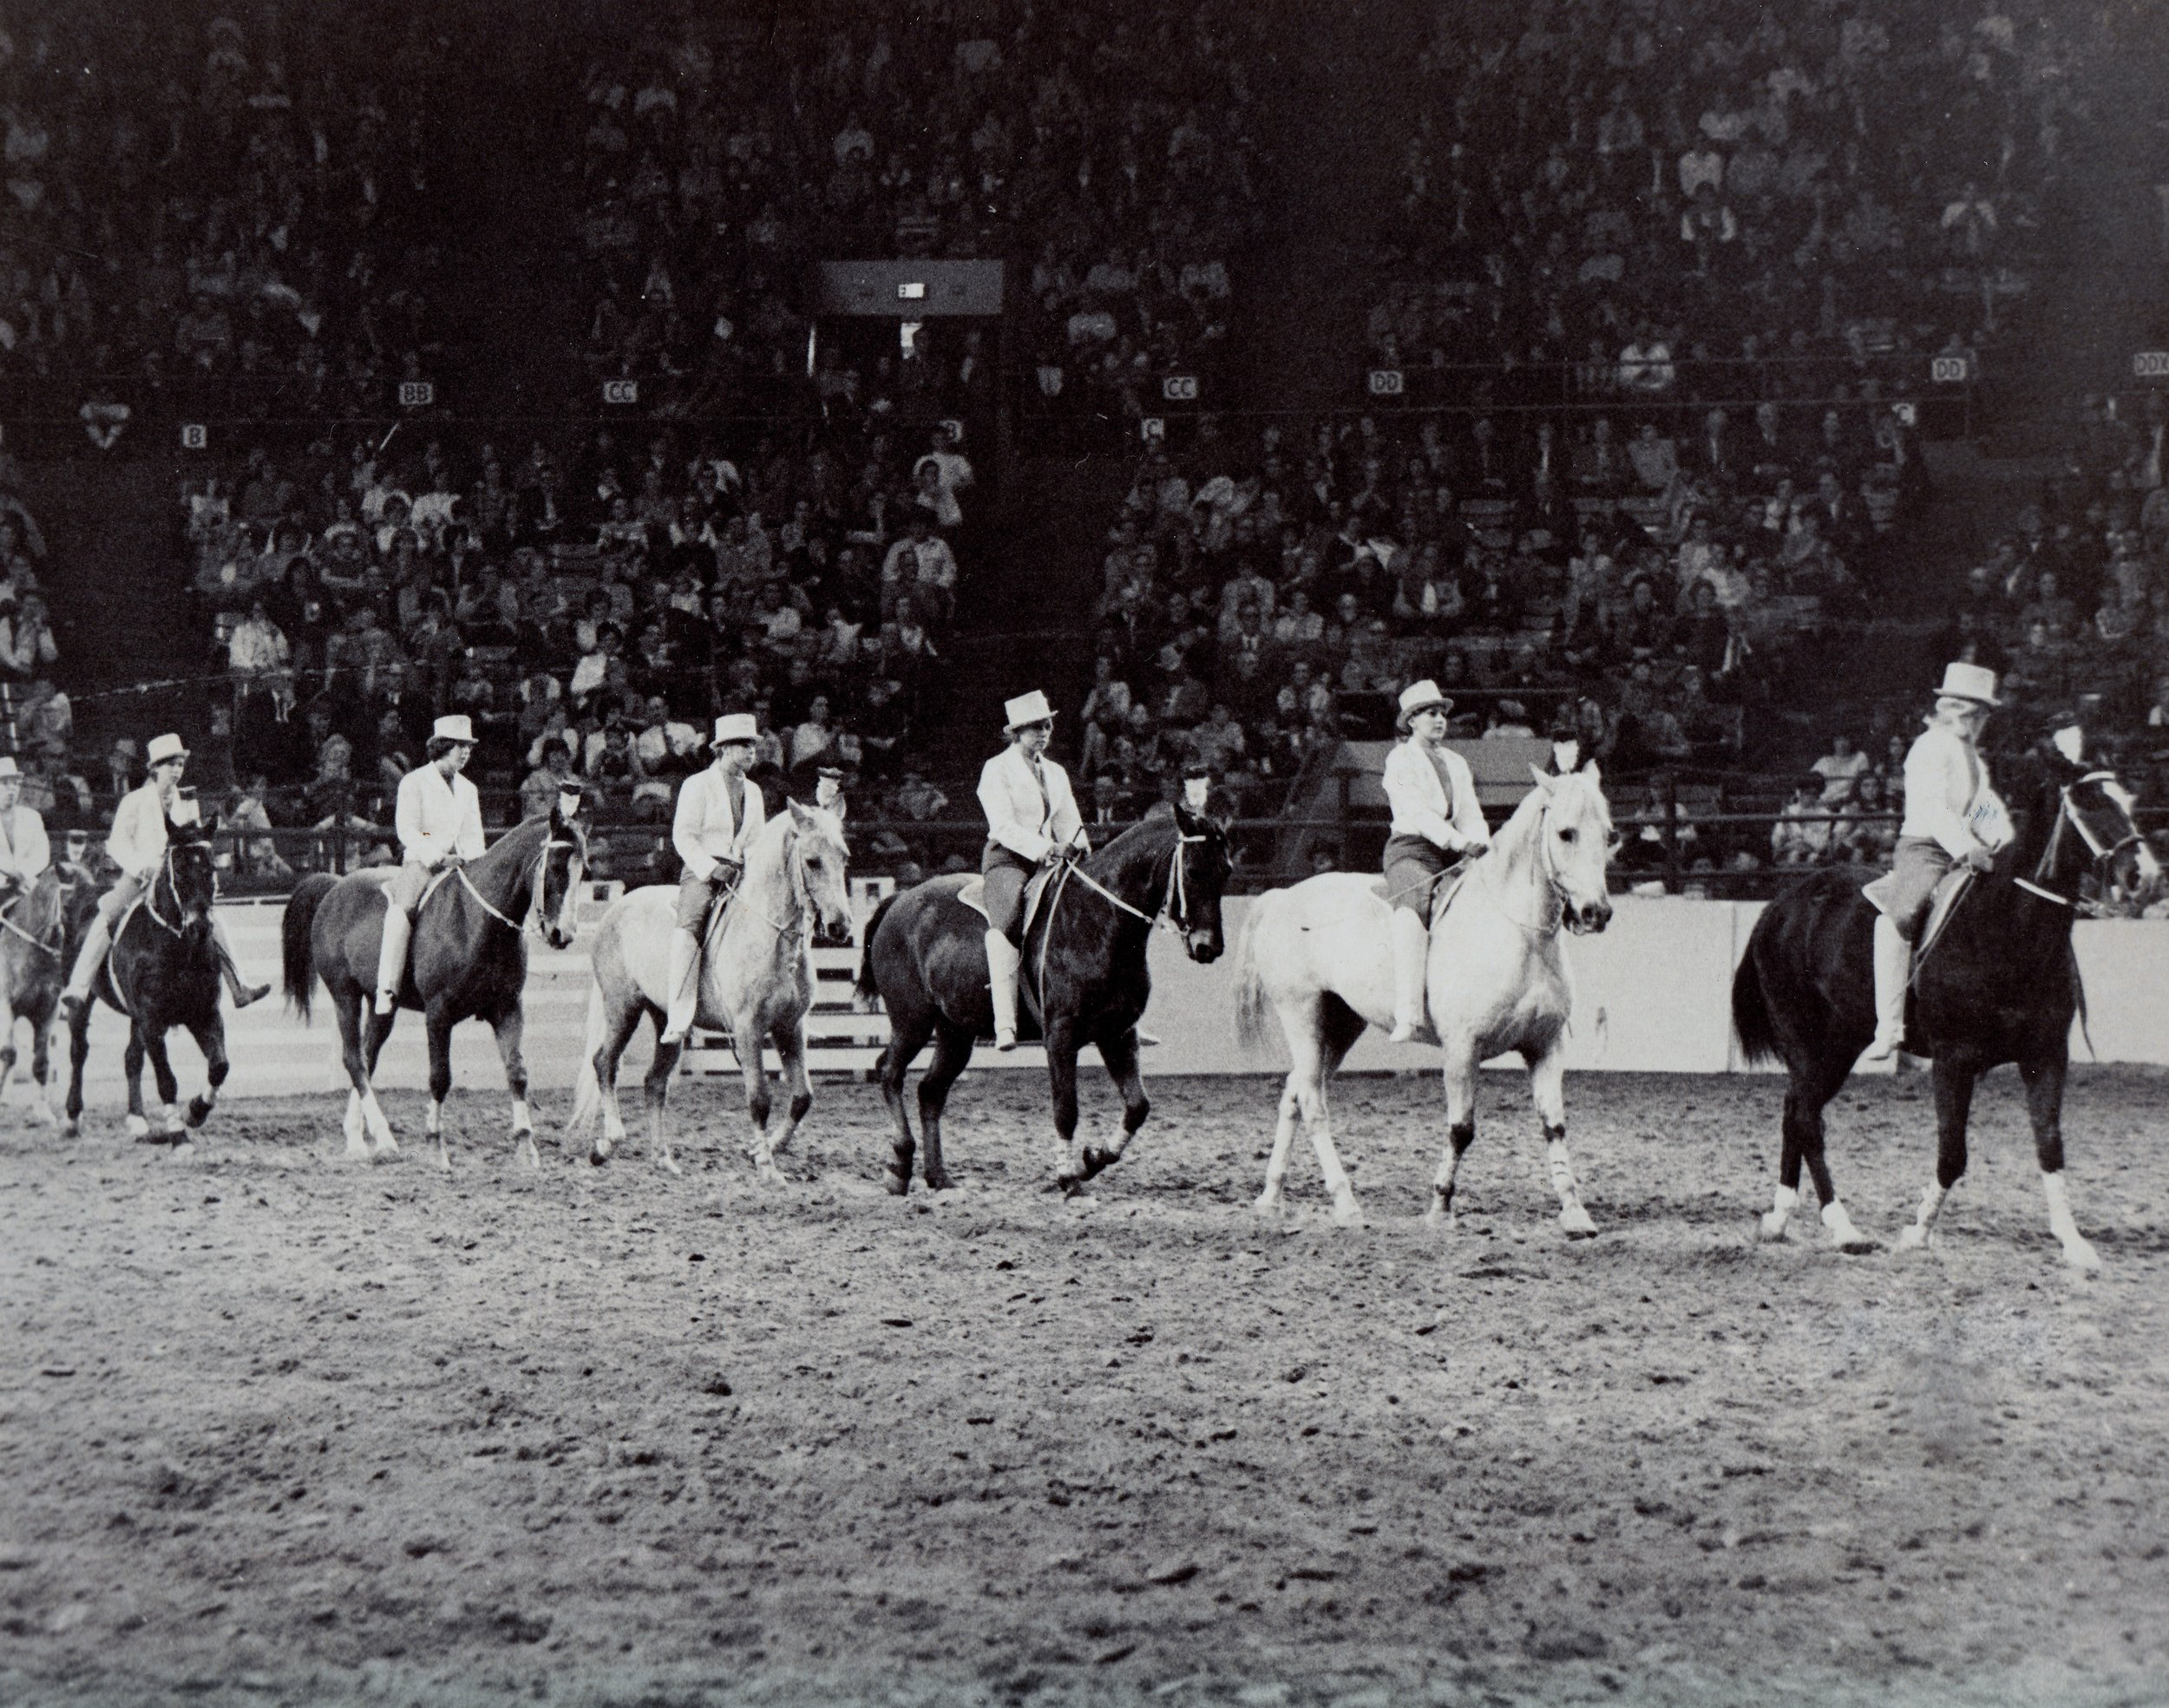 Dressage Captain Melody Mundell, followed by Sharon Easley, leads the Dressage team into their gracefully-measured act, 1969.